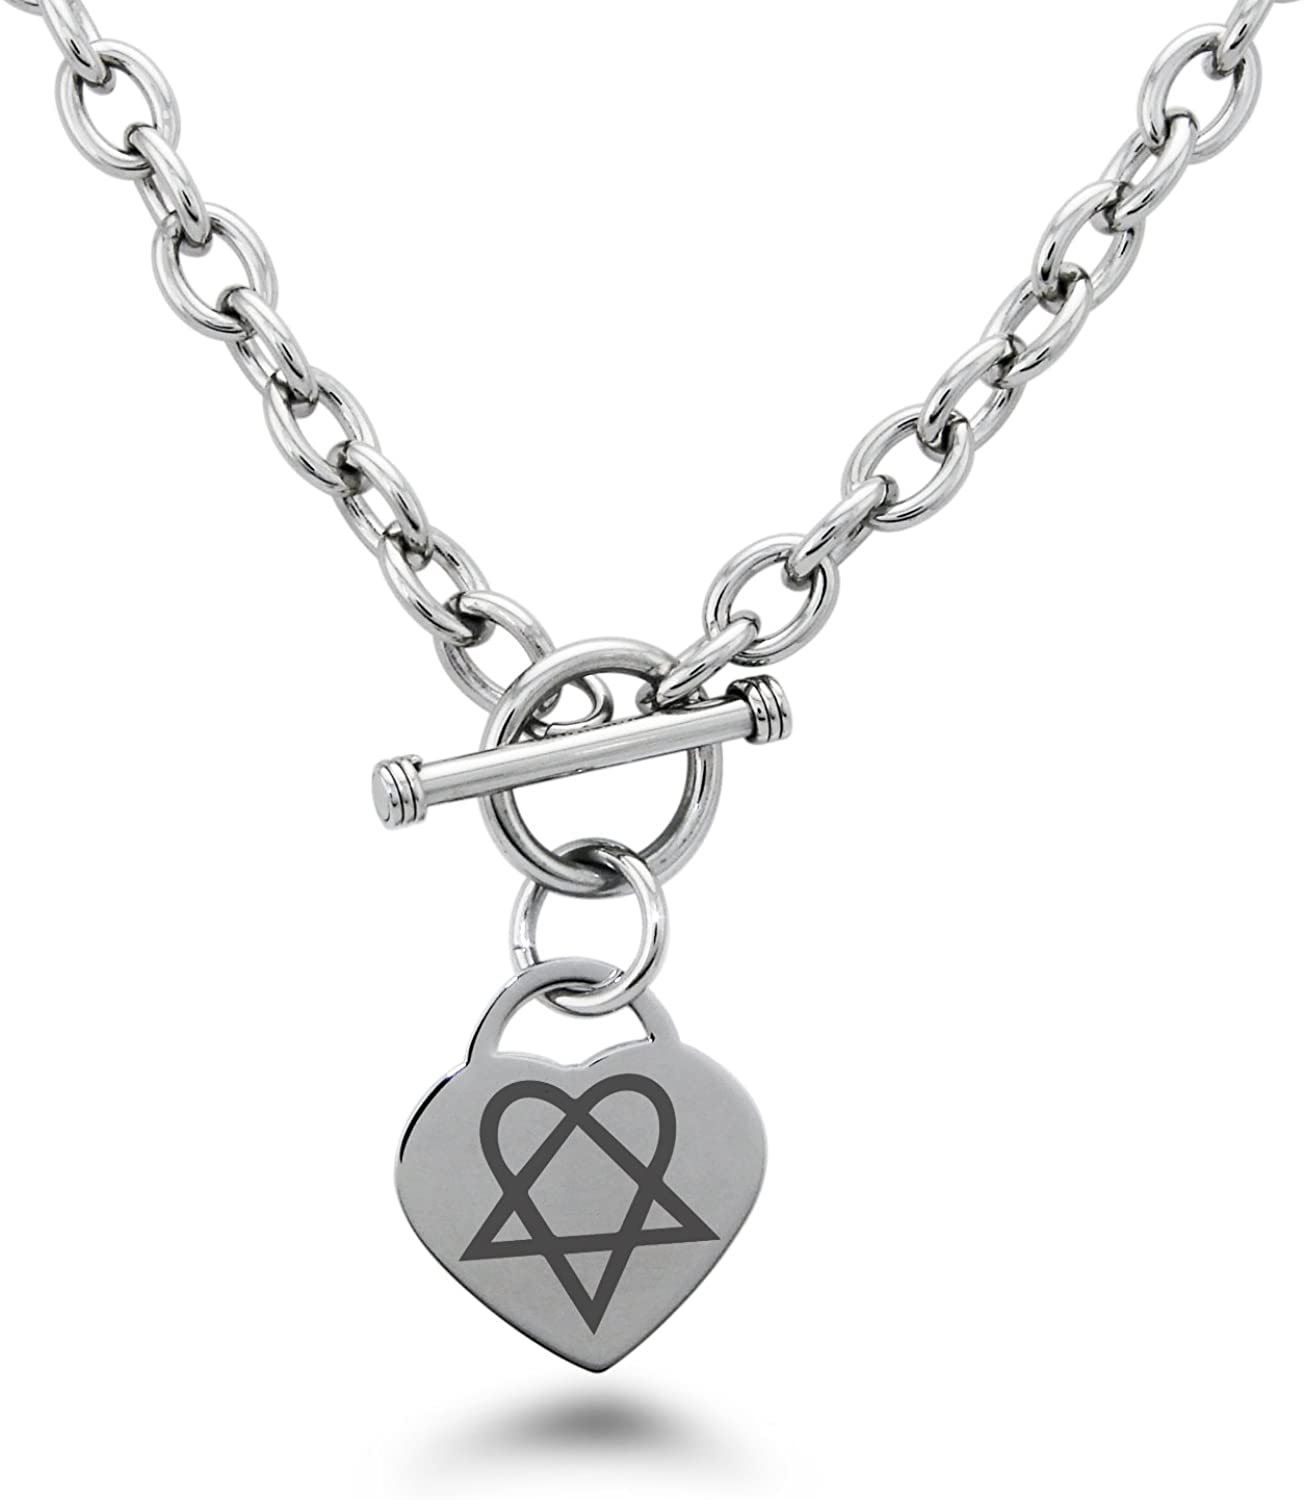 Tioneer Stainless Steel Heartagram Symbols Heart Charm Bracelet & Necklace